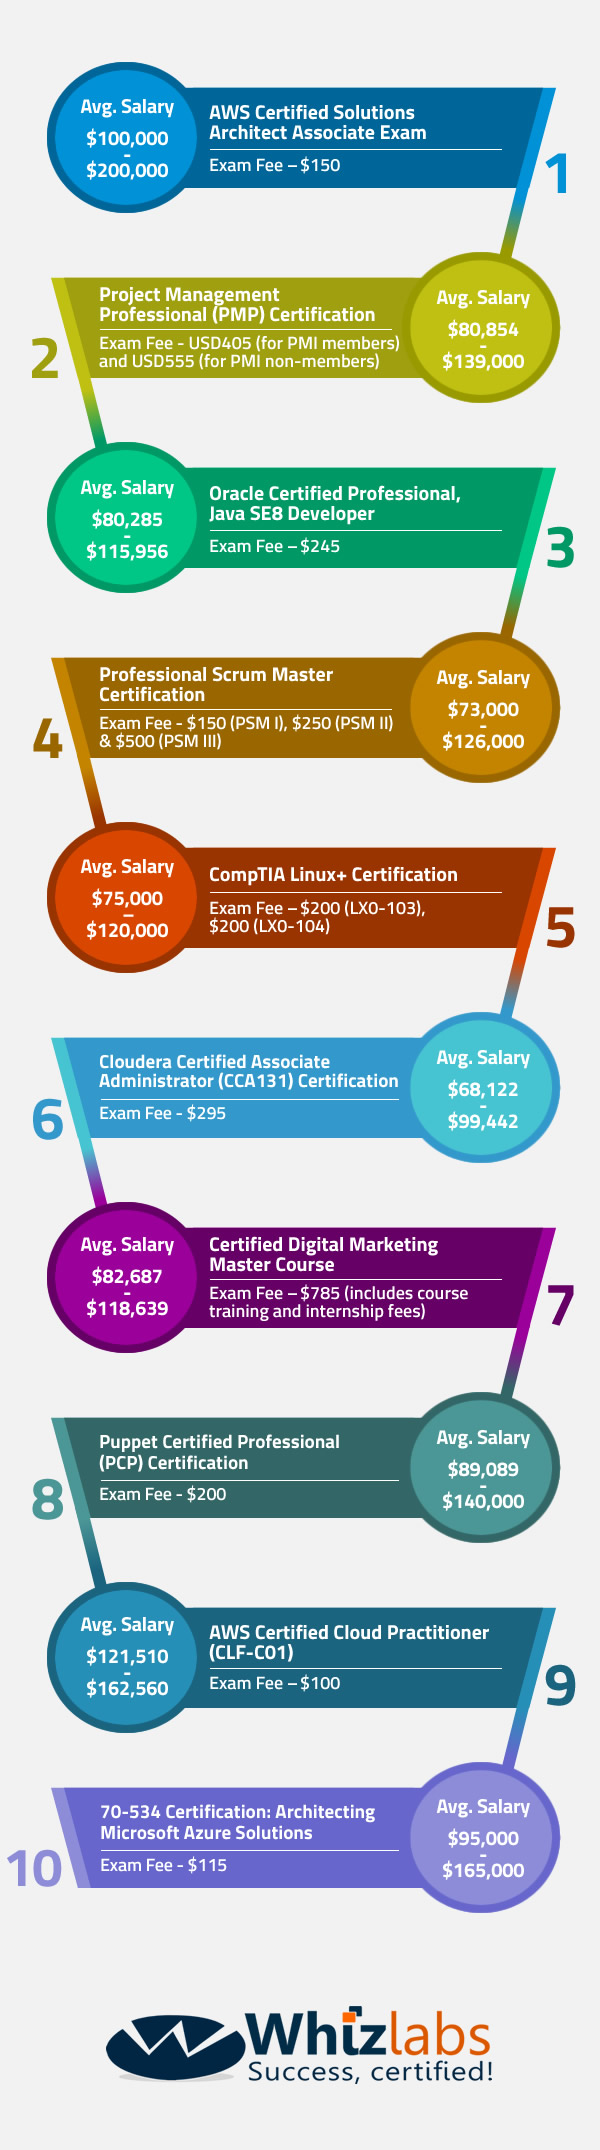 Top 10 It Certifications In 2018 Whizlabs Blog